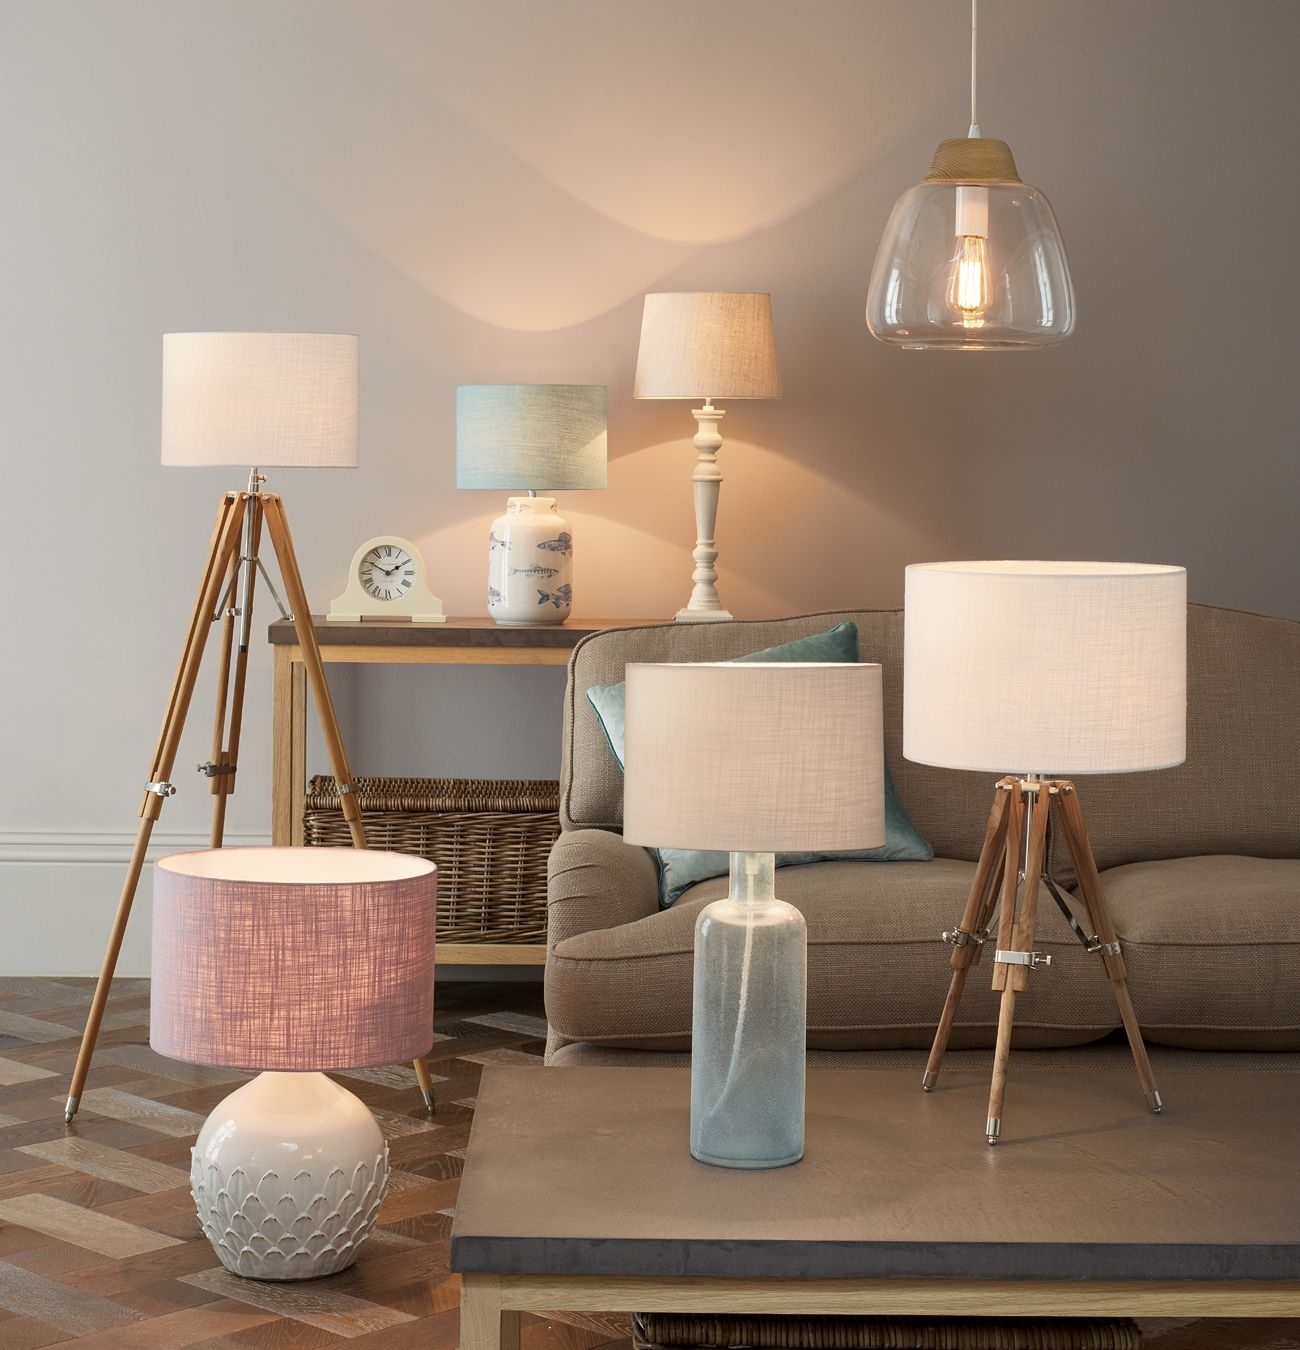 Inspiration about Laura Ashley Ss16 Lighting | ♪♪Inside Things♪♪ | Pinterest Regarding Laura Ashley Table Lamps For Living Room (#9 of 15)